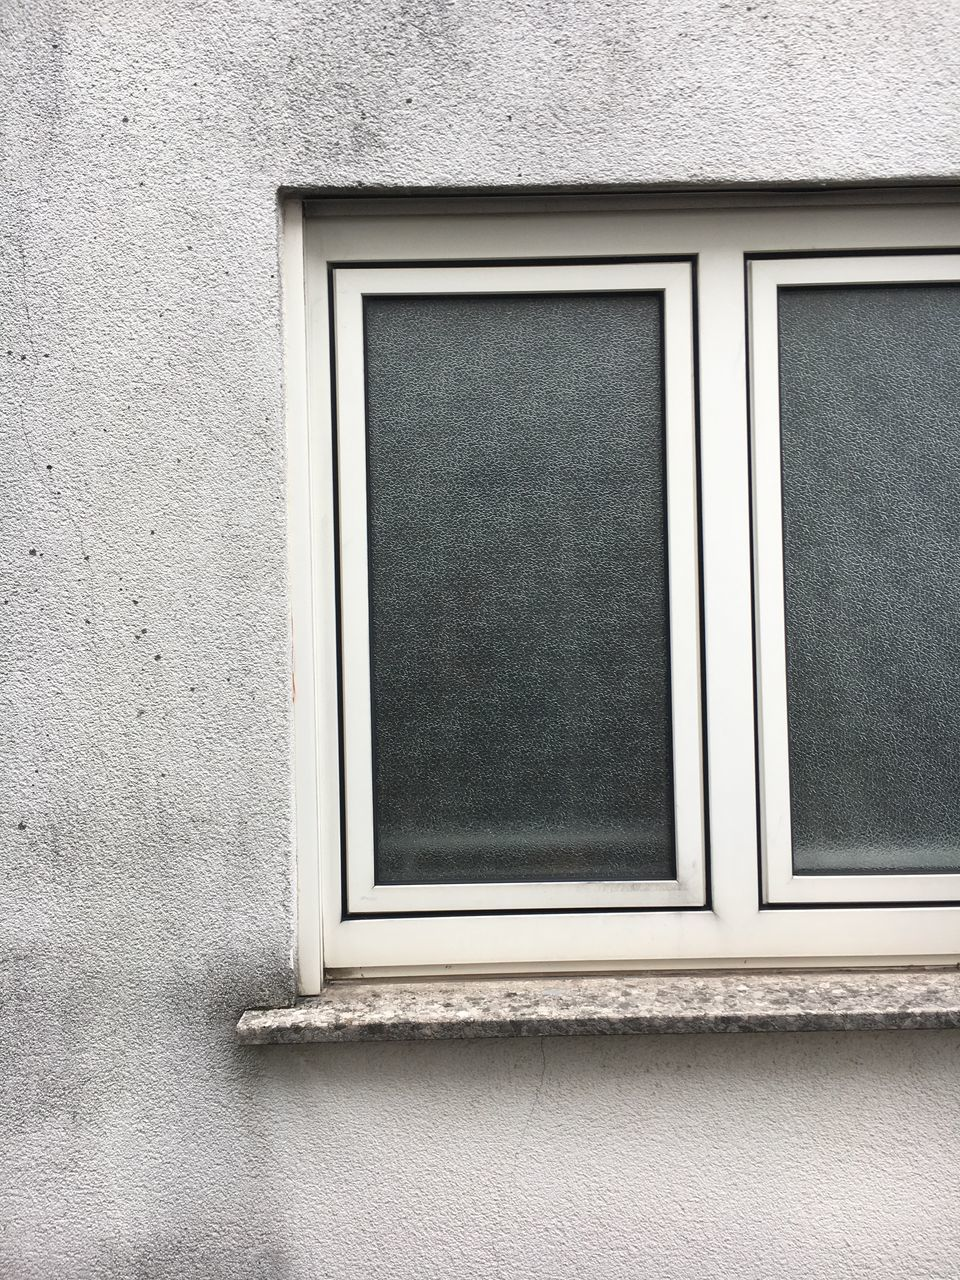 window, building exterior, built structure, architecture, day, no people, close-up, textured, outdoors